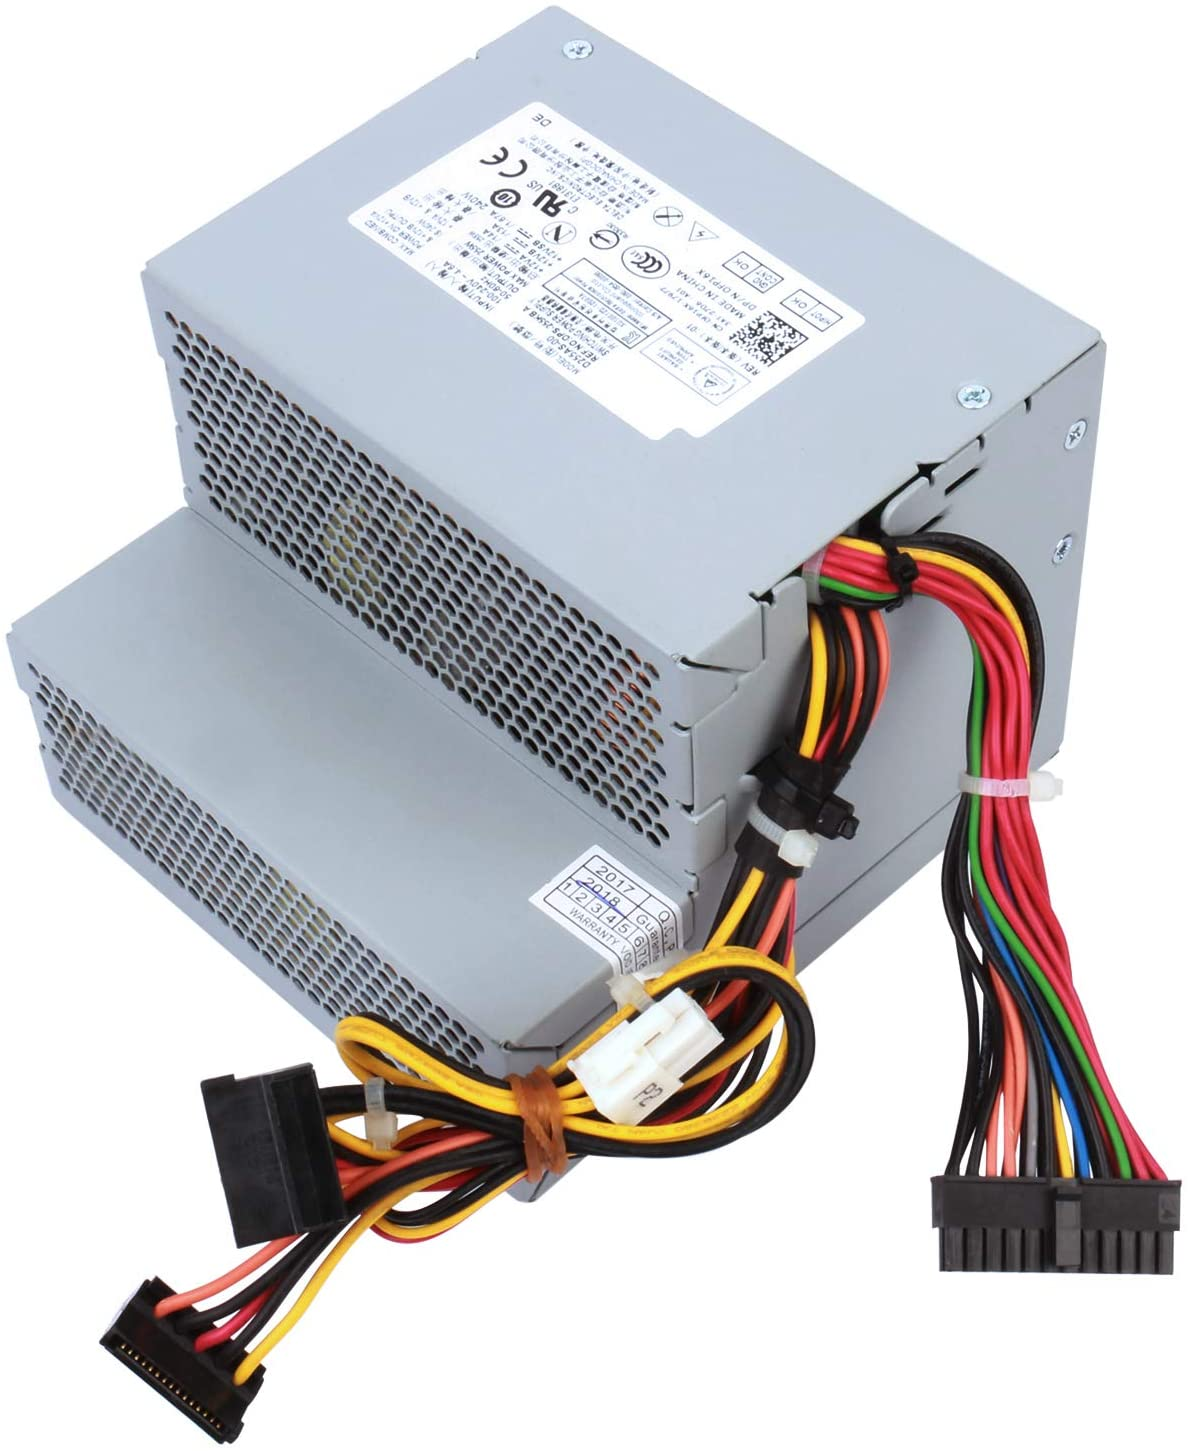 YEECHUN F255E-01 N249M 255W Power Supply Replacement for Dell Optiplex 580 760 780 960 980 DT PSU AC255AD-00 H255E-01 L255P-01 D255P-00 DPS-255BB A V6V76 RM110 FR597 CY826